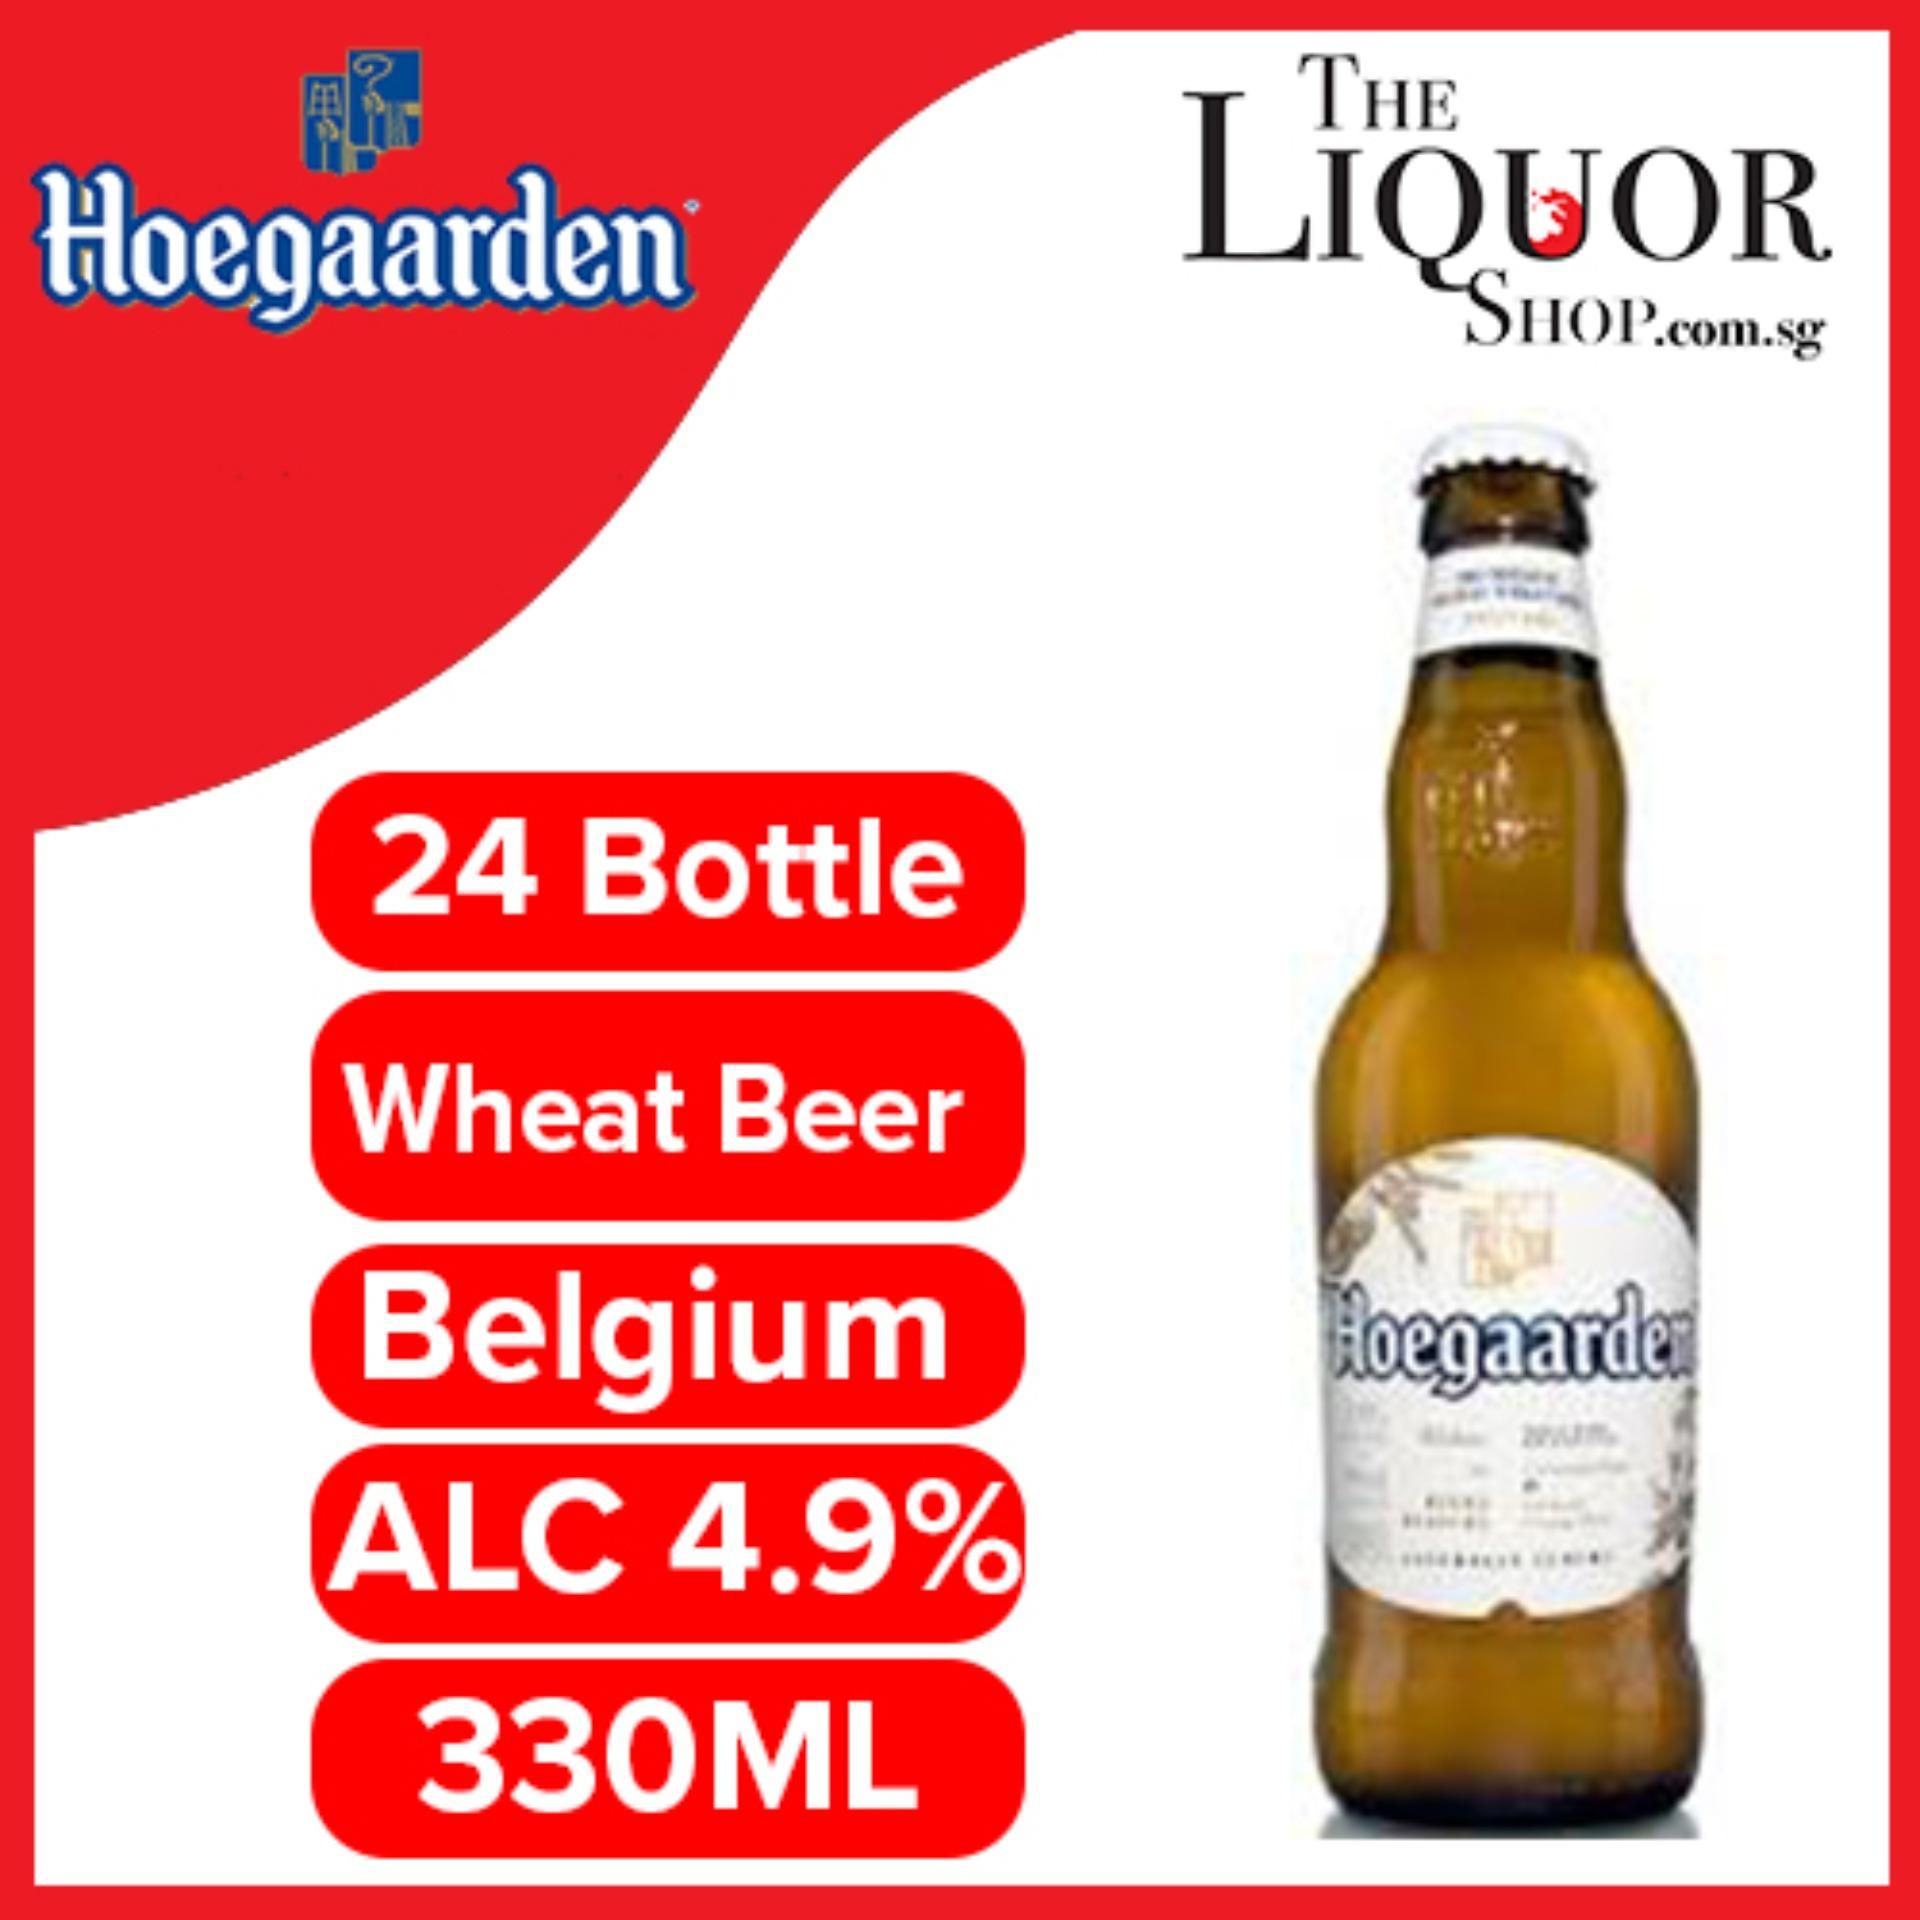 Hoegaarden Original Belgian Wheat Beer 330ml X 24 Bottles By The Liquor Shop.